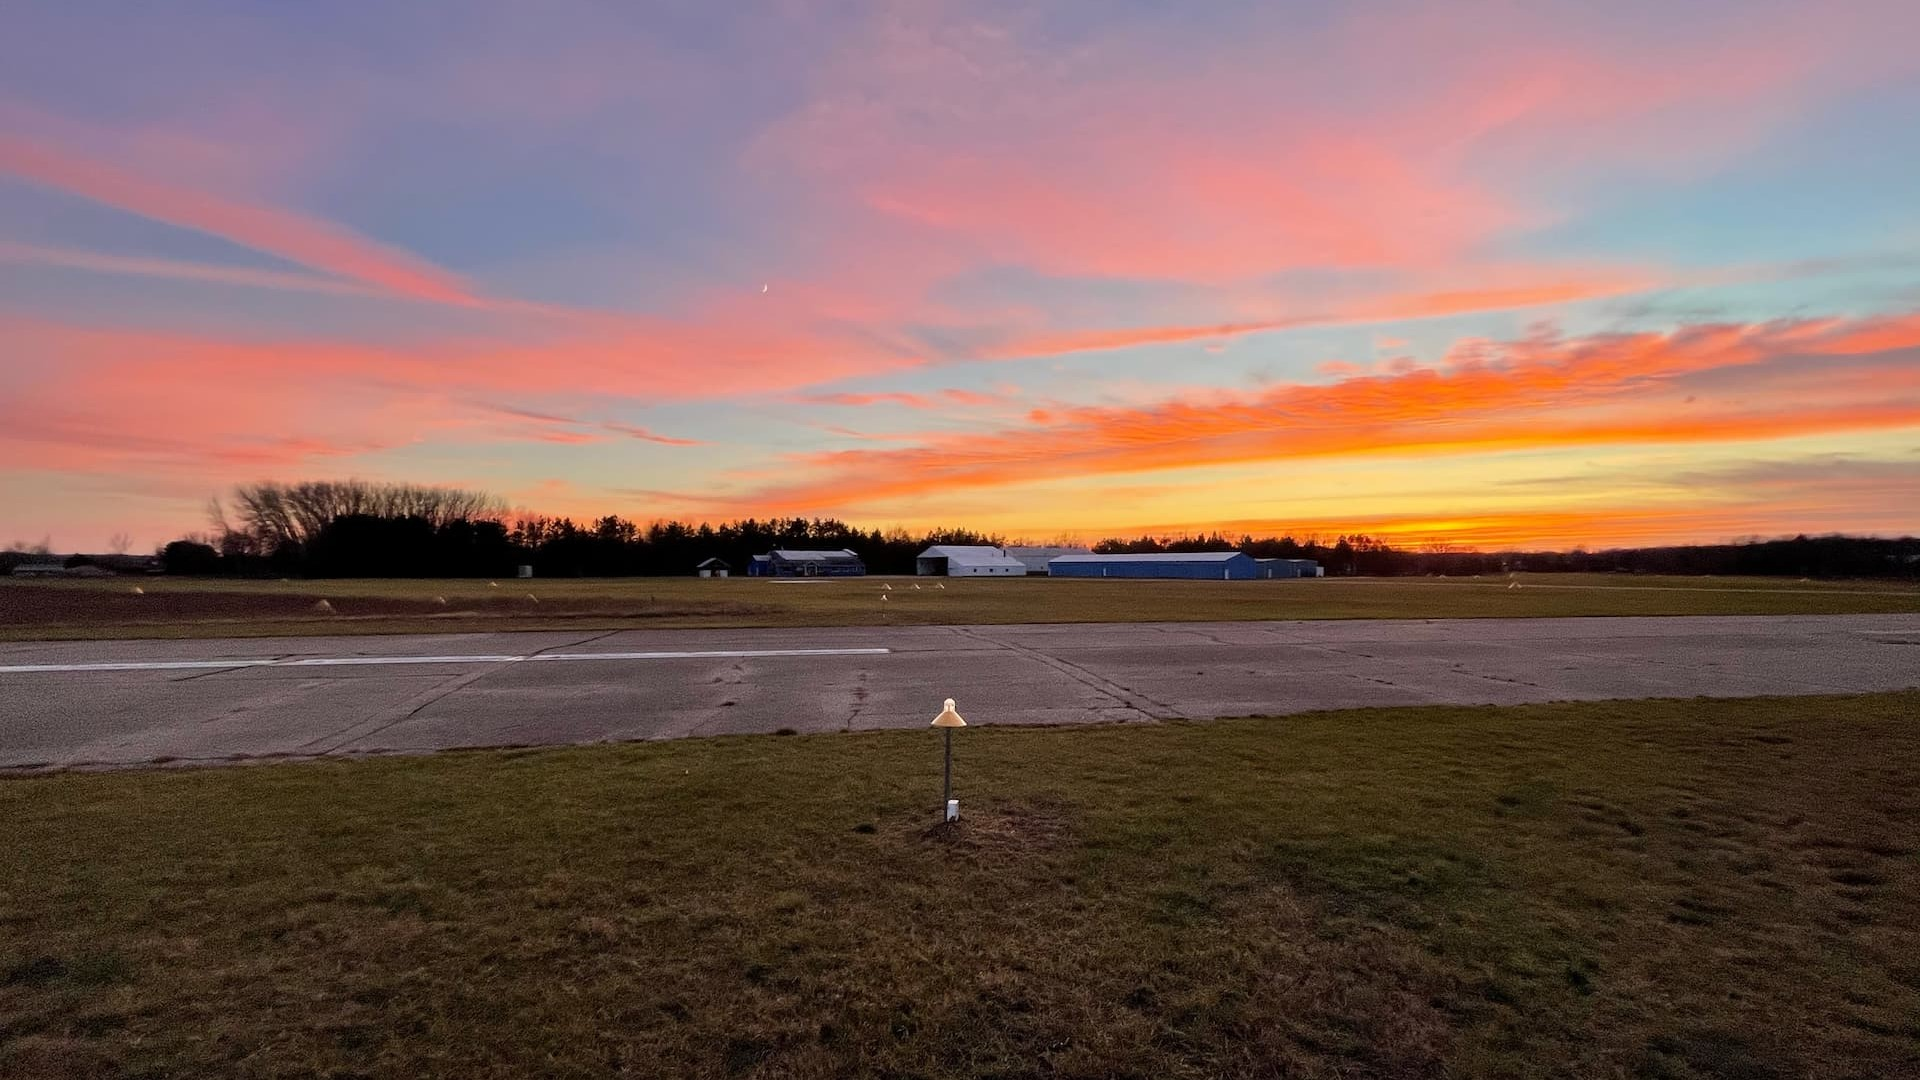 A picture of the Lowell City Airport at sunset.